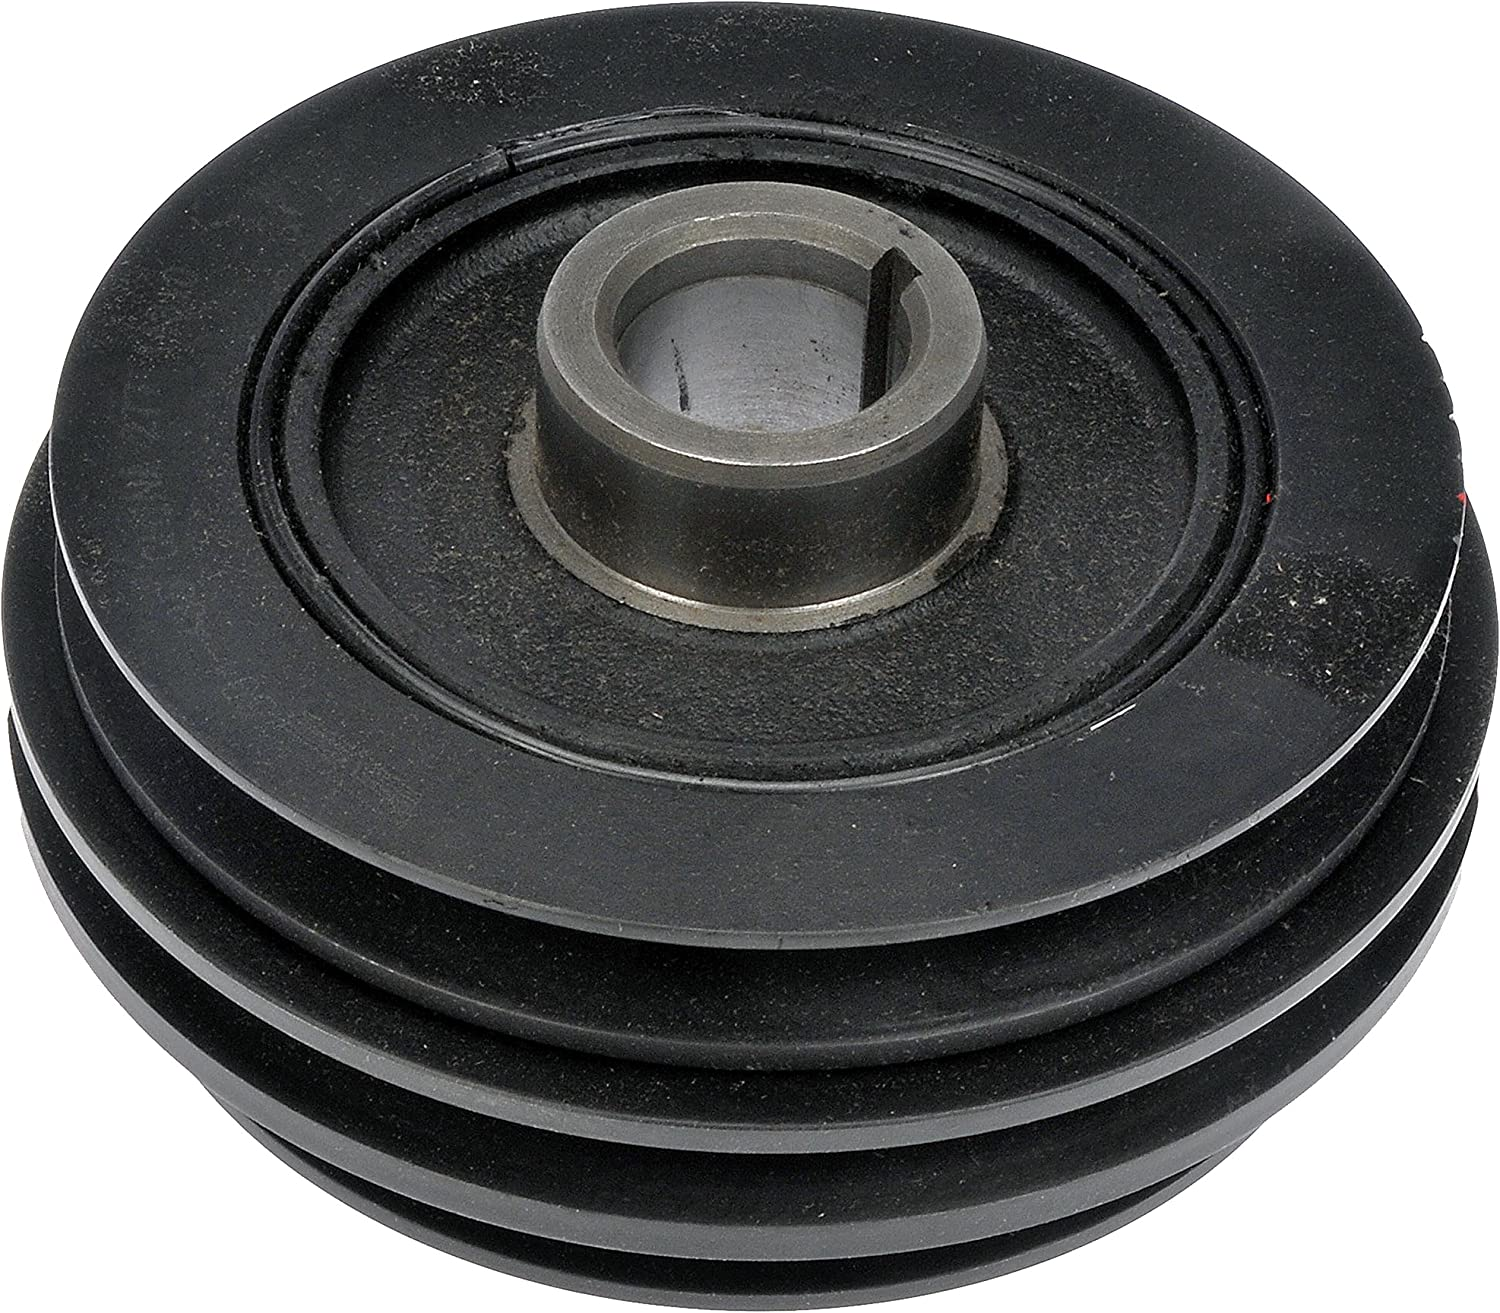 Dorman 594-435 Engine Balancer Harmonic Outlet Free shipping on posting reviews ☆ Free Shipping